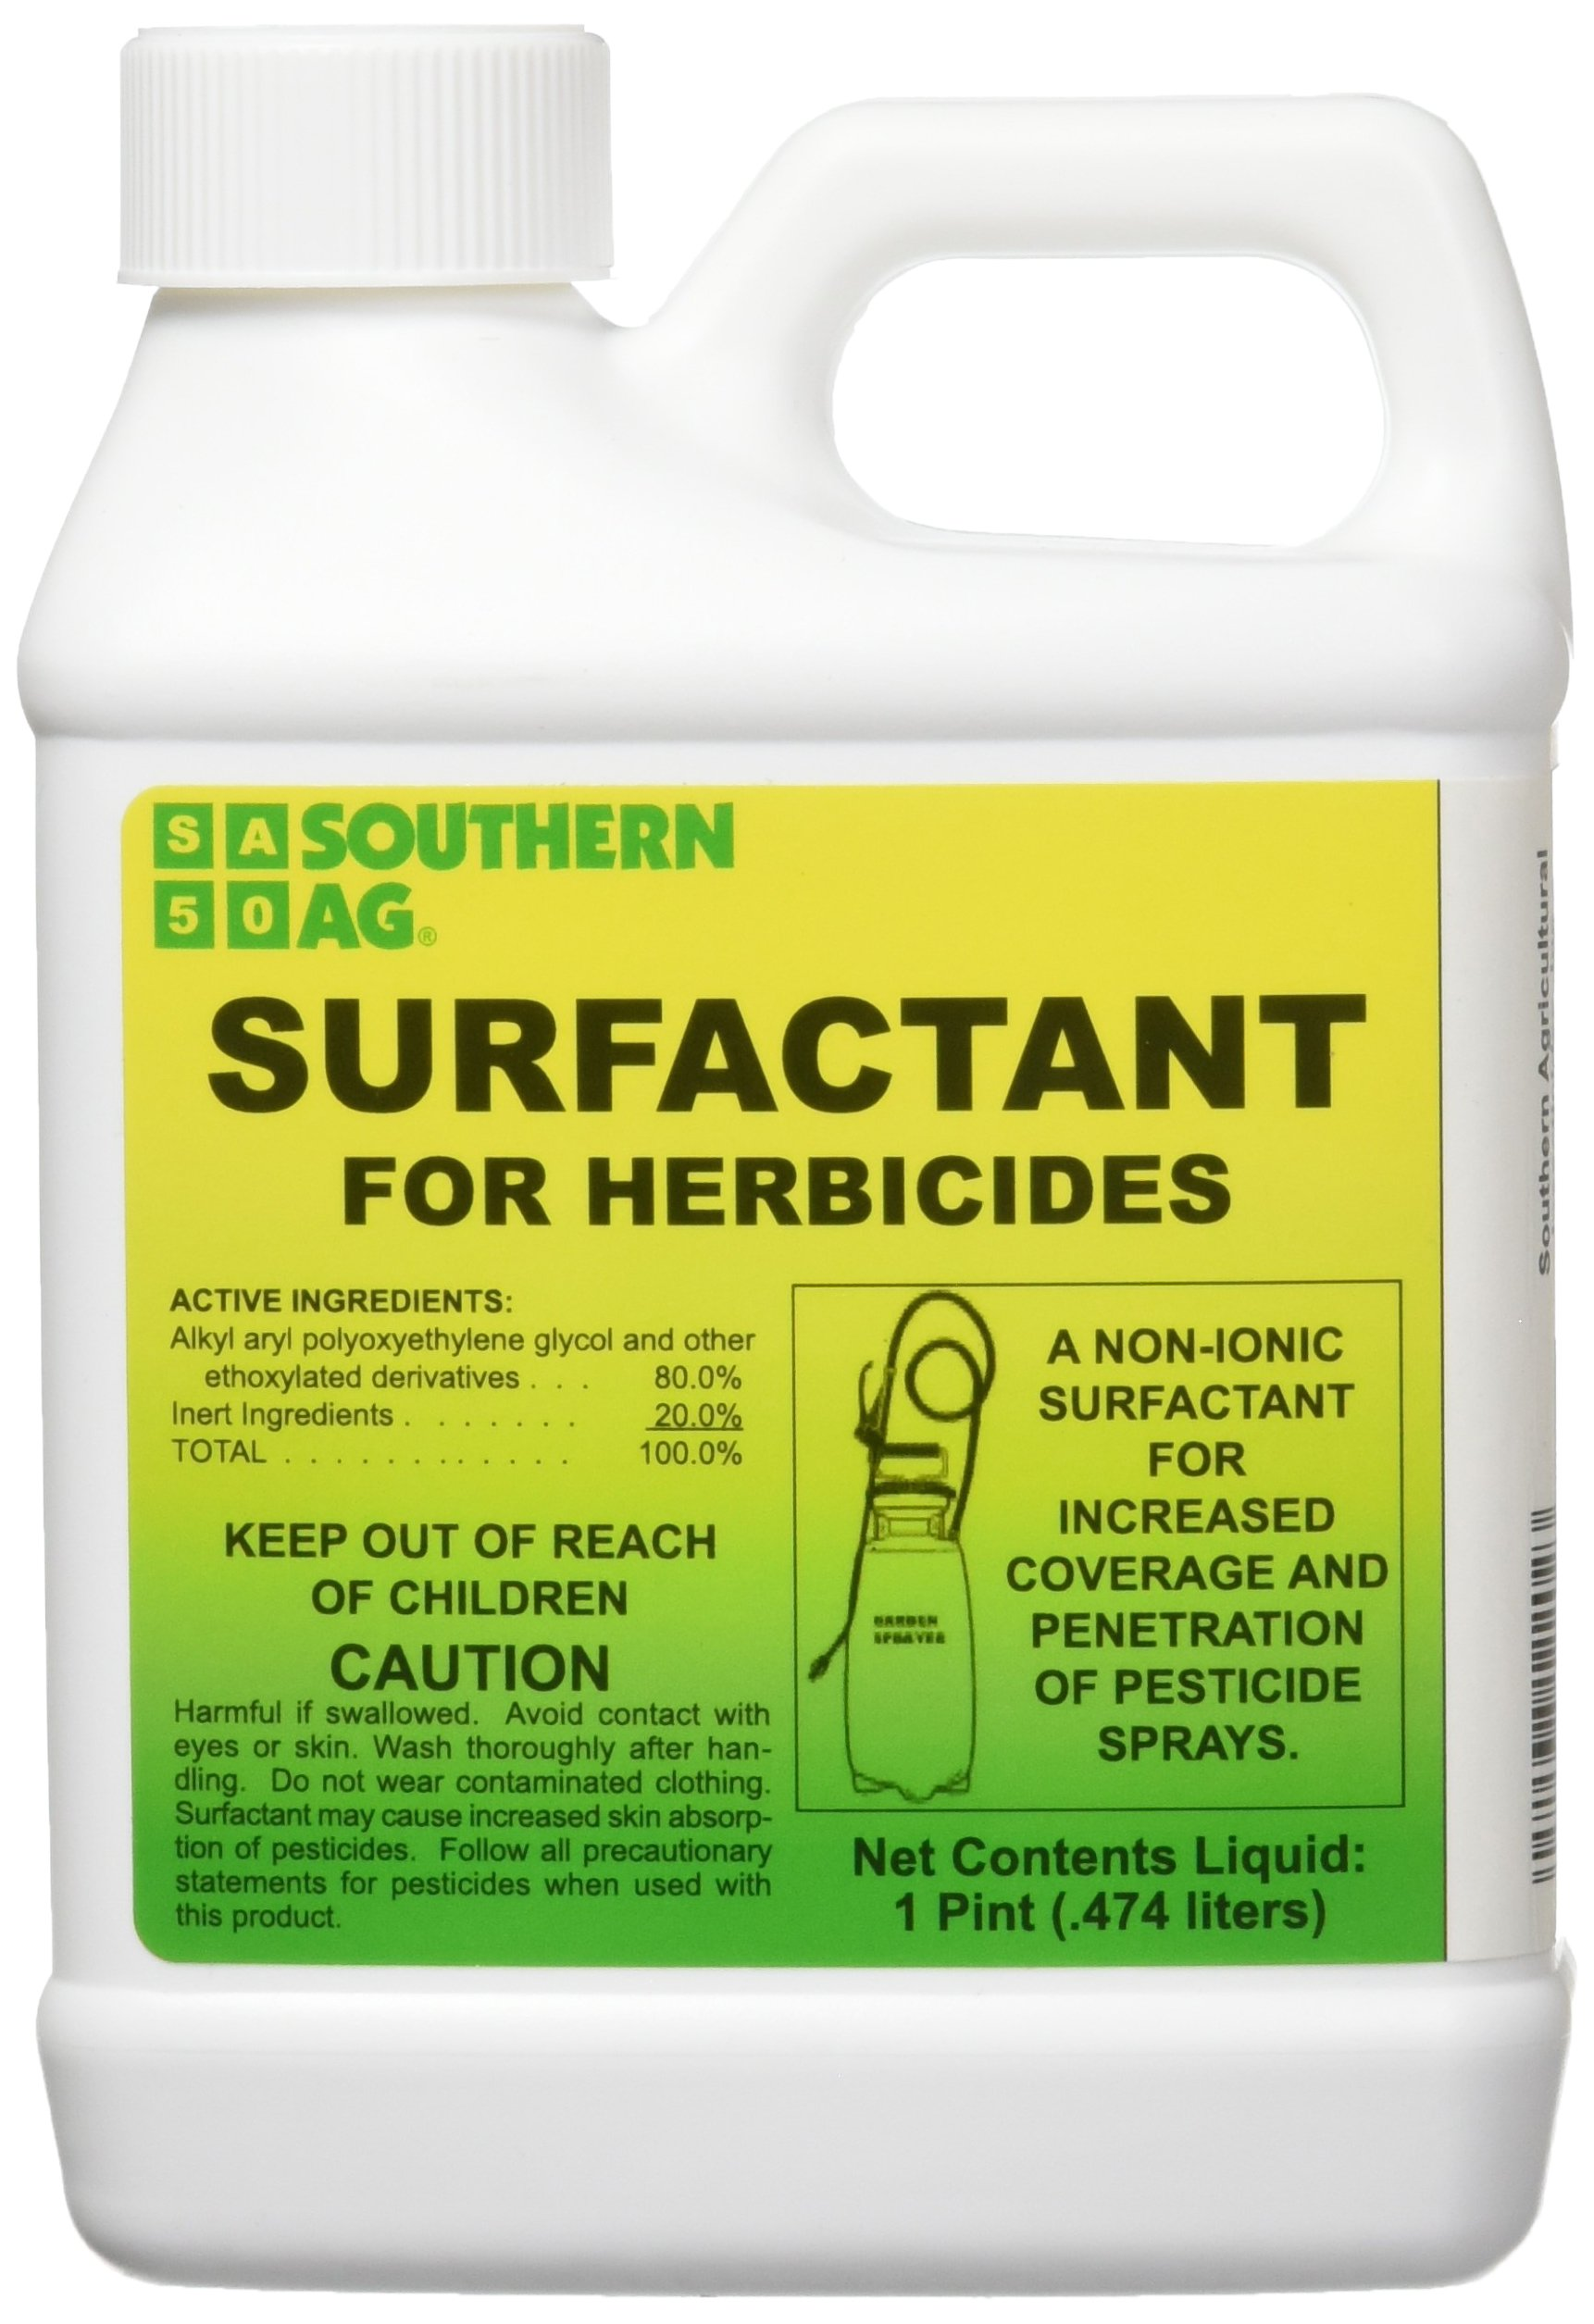 Southern Ag Surfactant for Herbicides Non-Ionic, 16oz, 1 Pint by Southern Ag